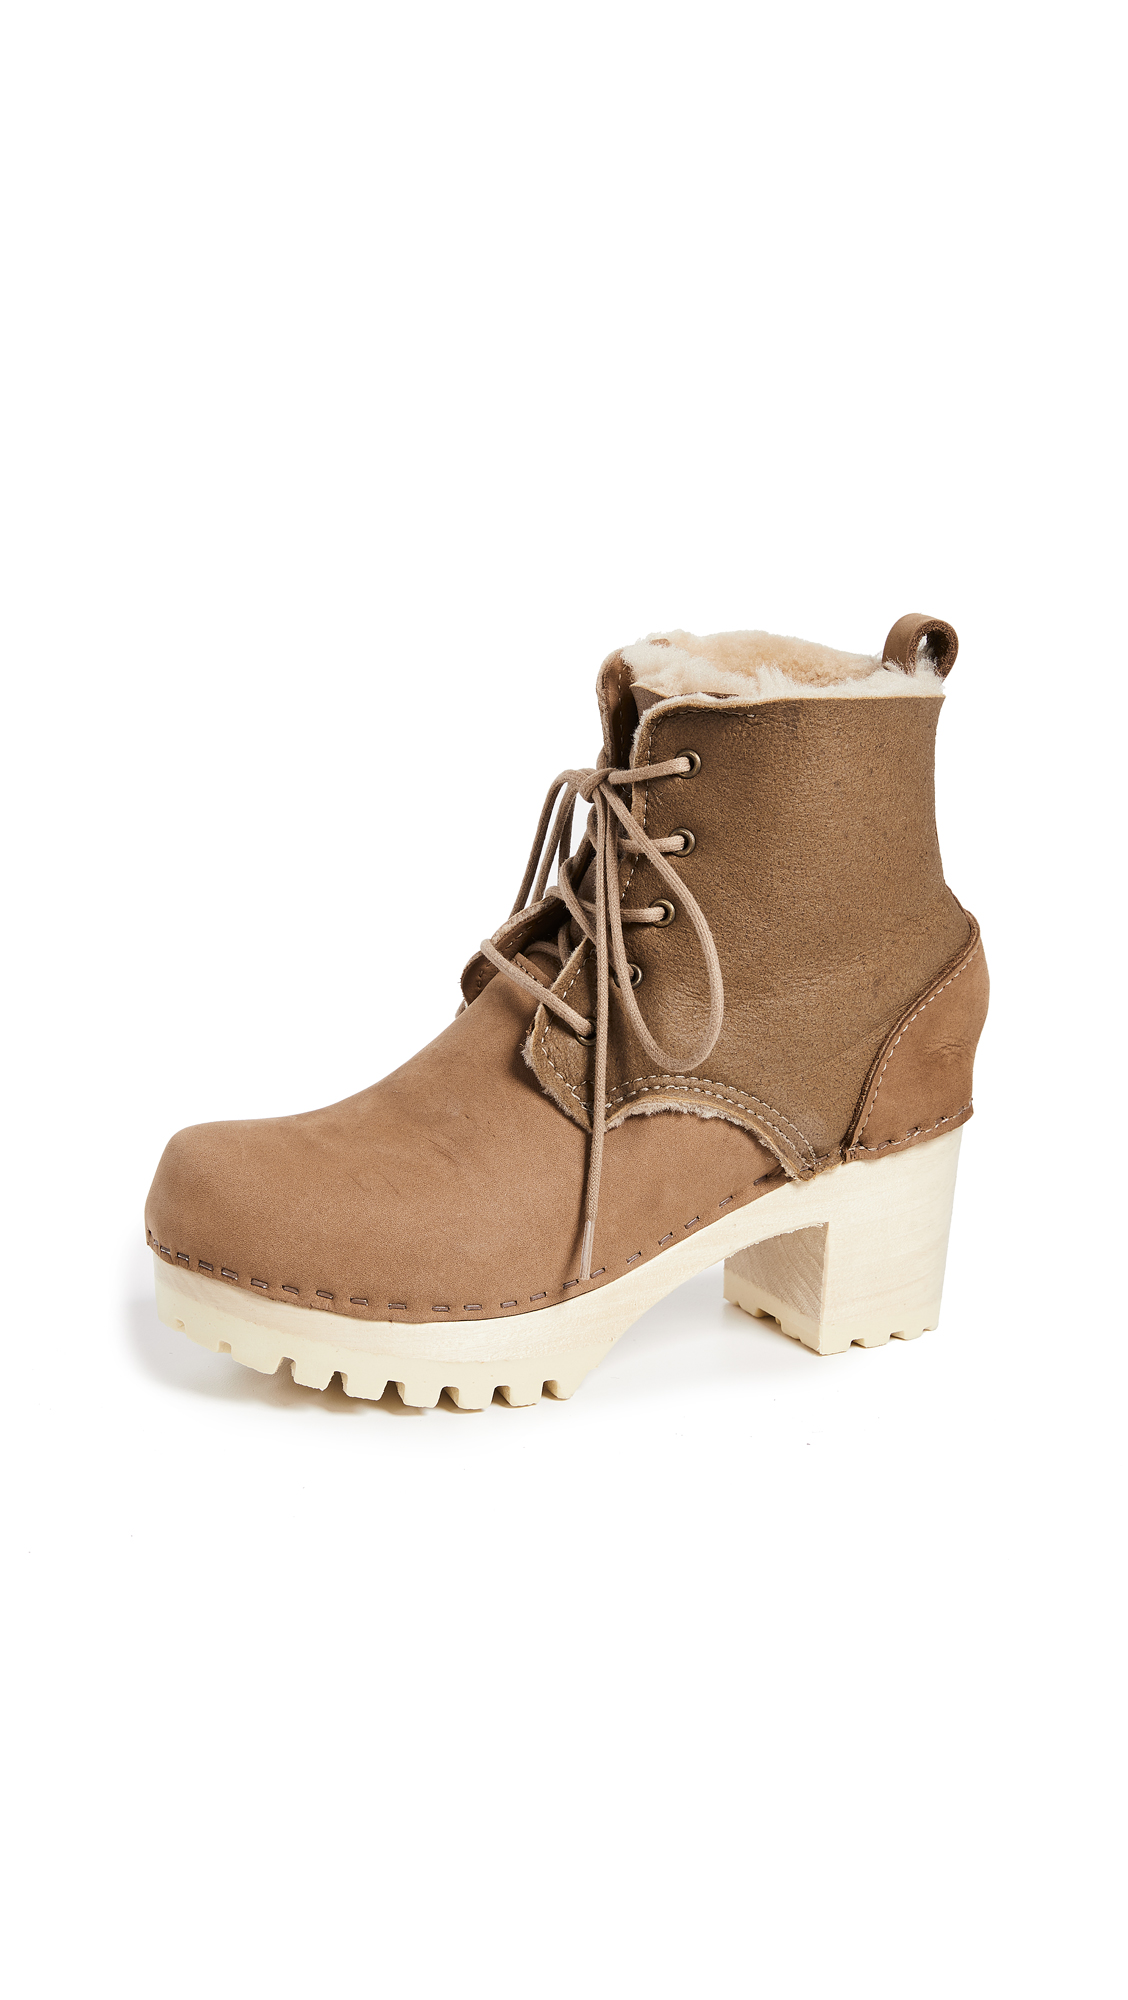 No.6 Lander Lace Up Shearling Boots